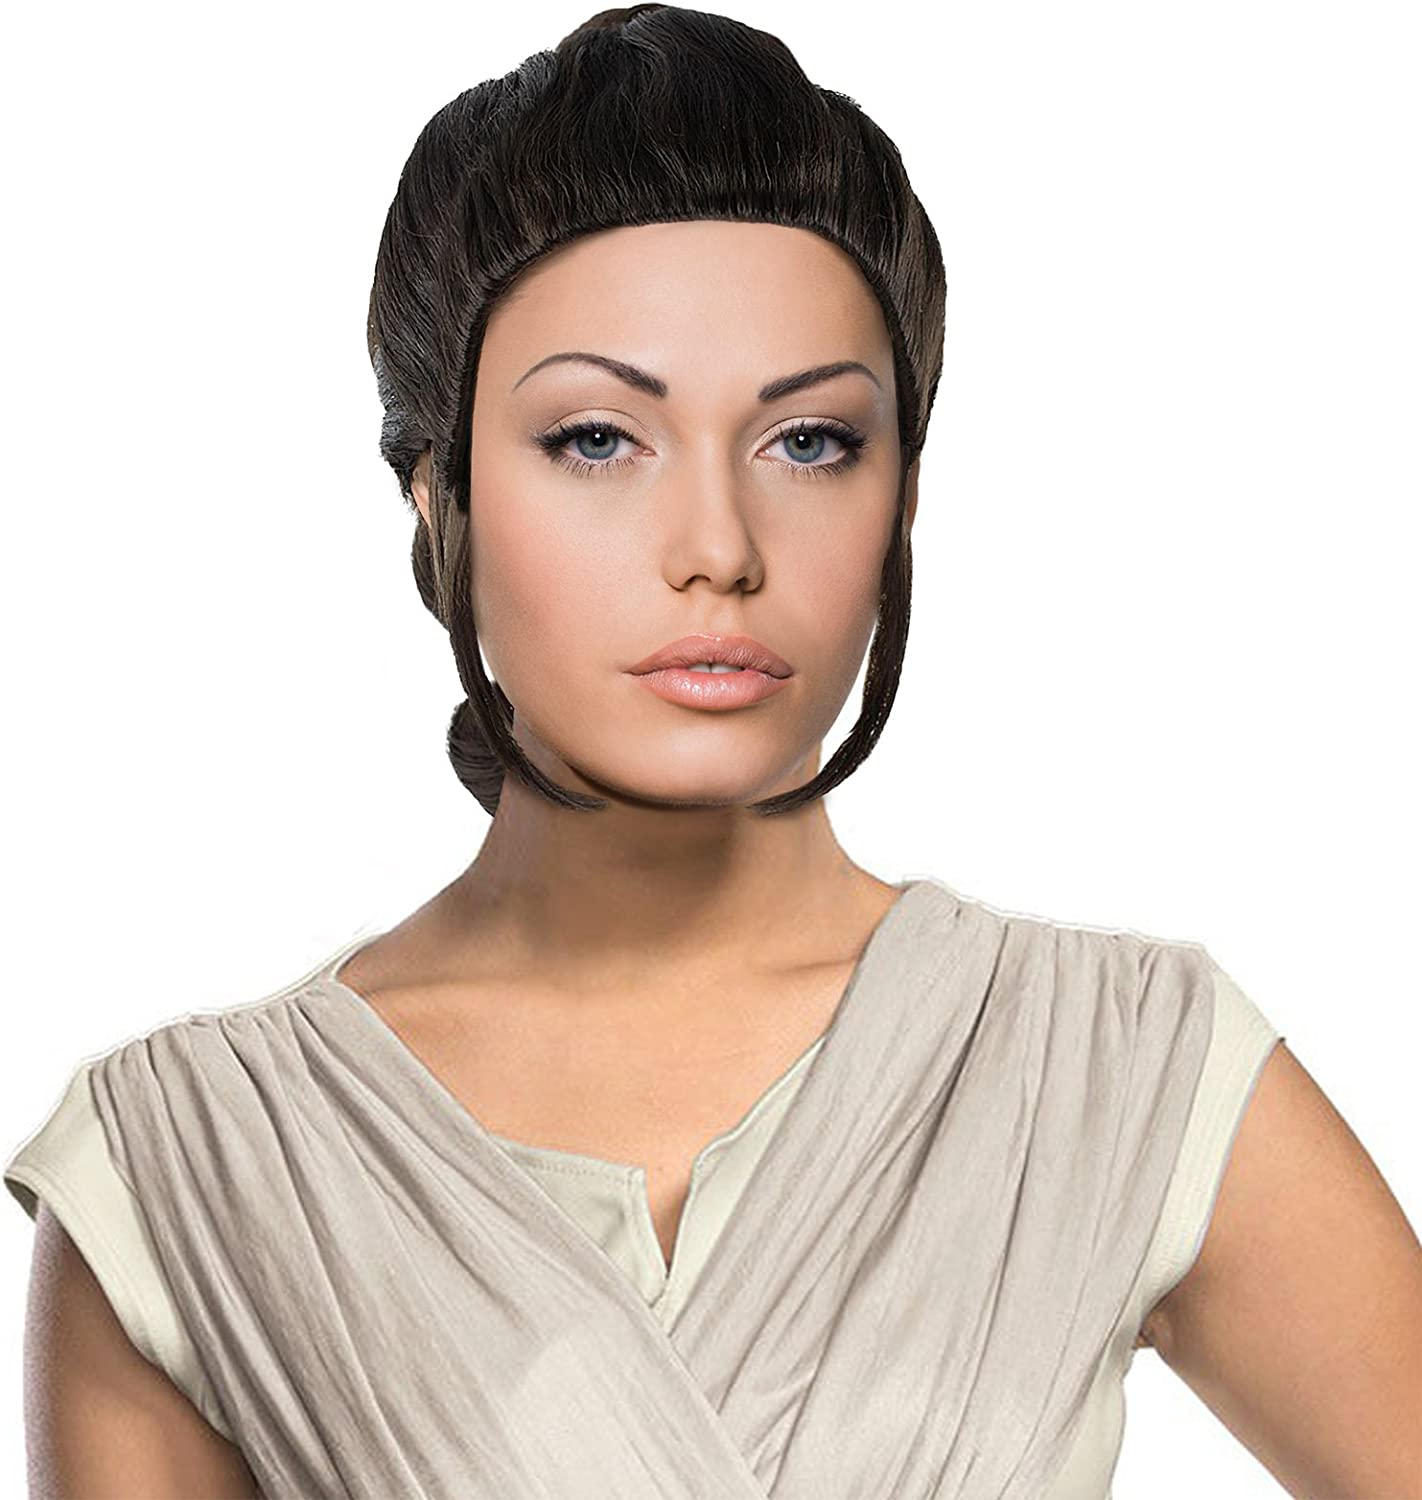 Solaris Women's Triple Bun All items Super special price in the store Wig Cosplay for Halloween Costu Theme